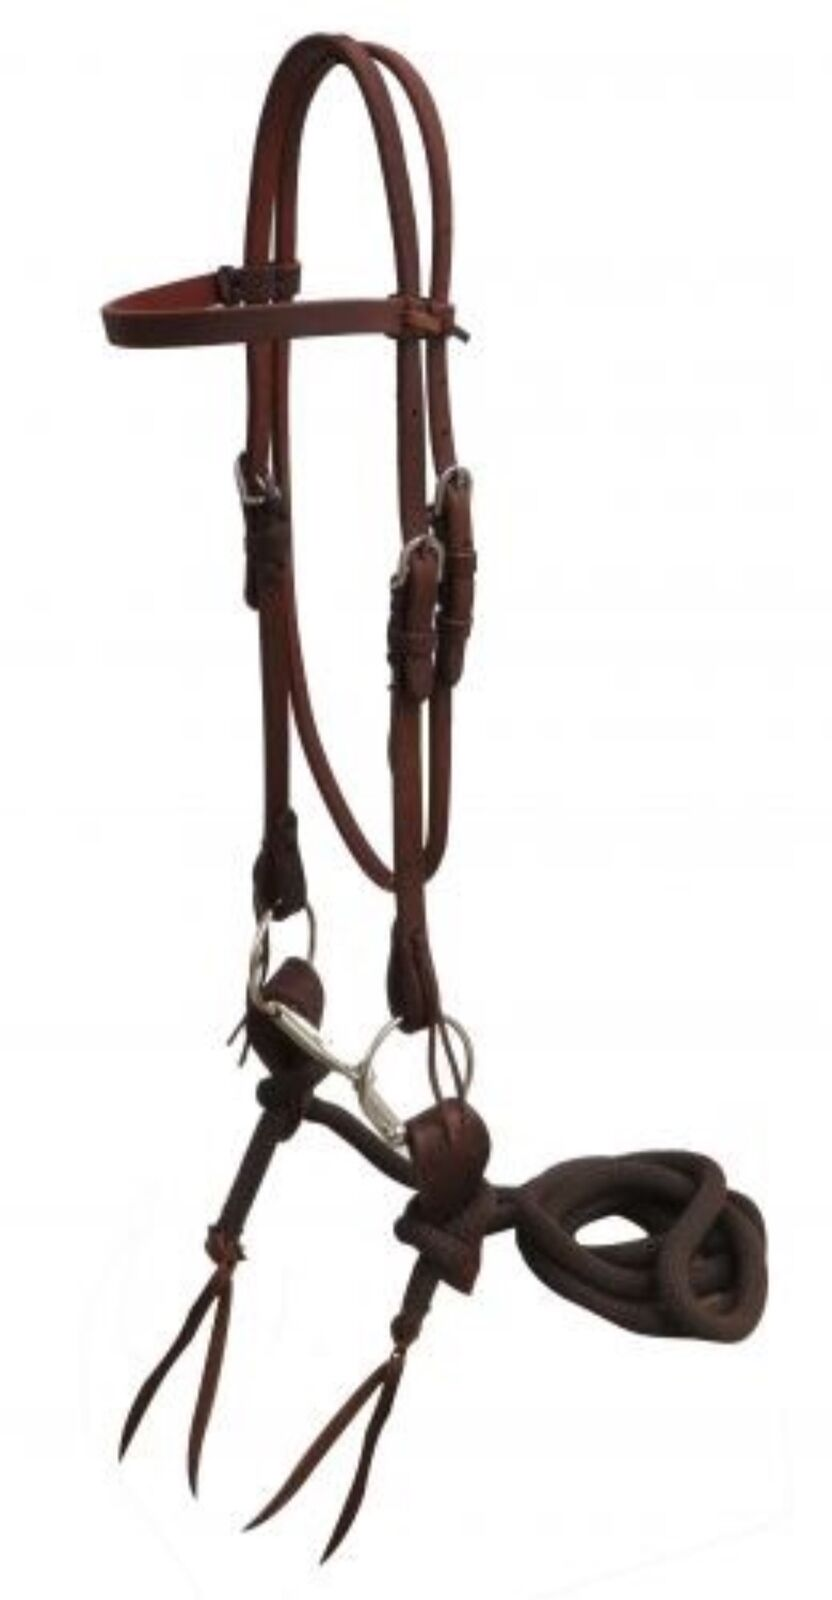 Showman Oiled Harness Leather Headstall W  O-ring Snaffle Slobber Strap Reins